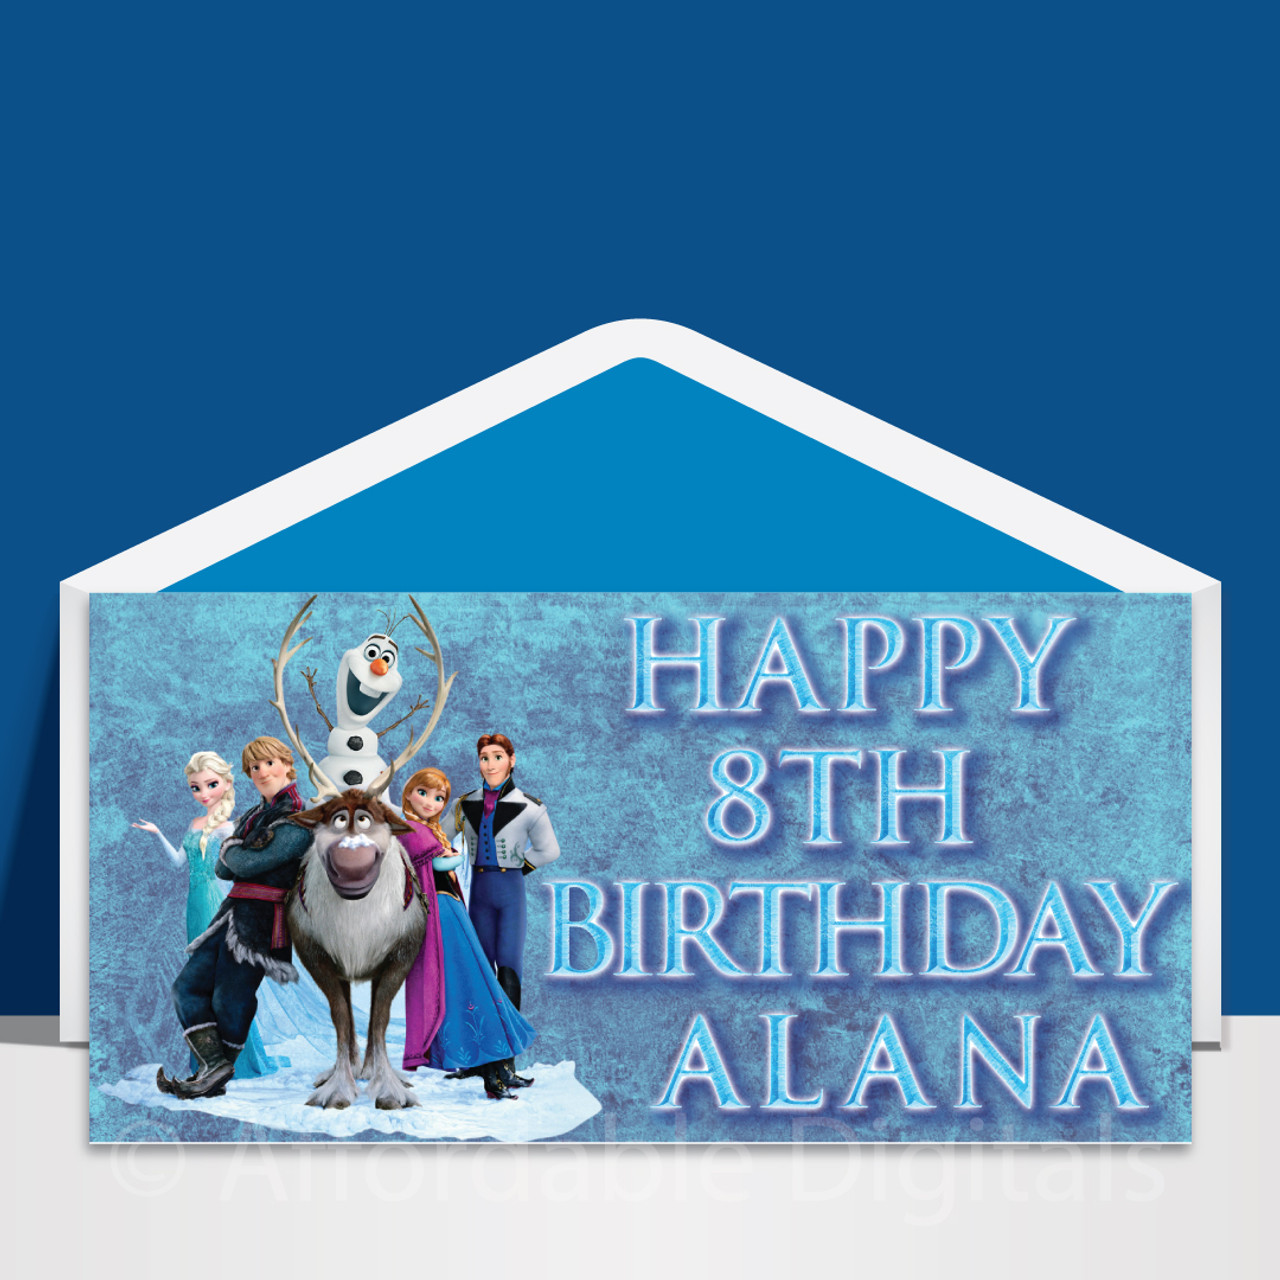 Stupendous Frozen Personalised Dl Birthday Card Design 10002 Affordable Funny Birthday Cards Online Barepcheapnameinfo